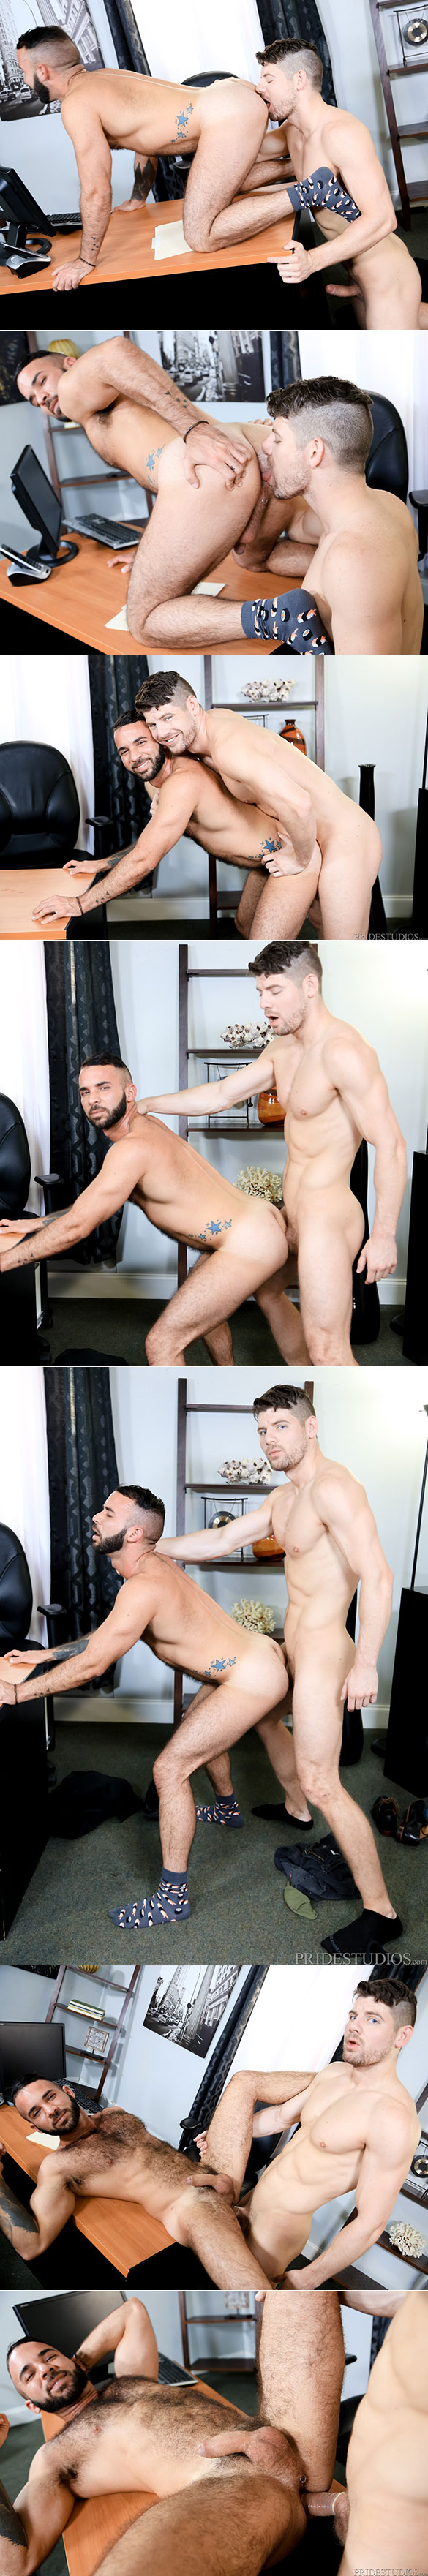 "Pride Studios: Connor Halsted bangs Fernando Del Rio in ""My Credit Sux"""